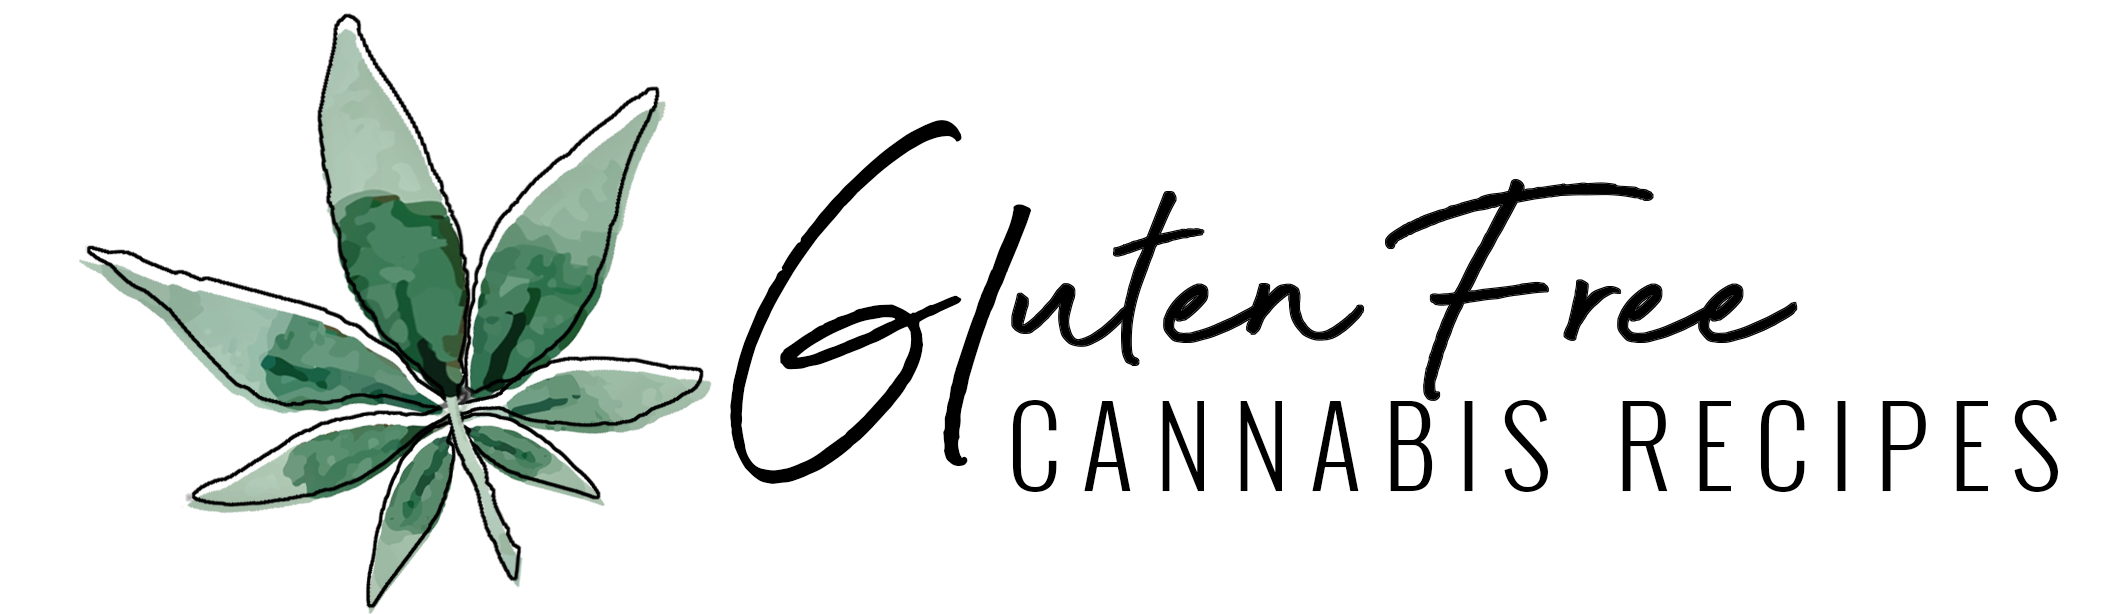 Gluten Free Cannabis Recipes